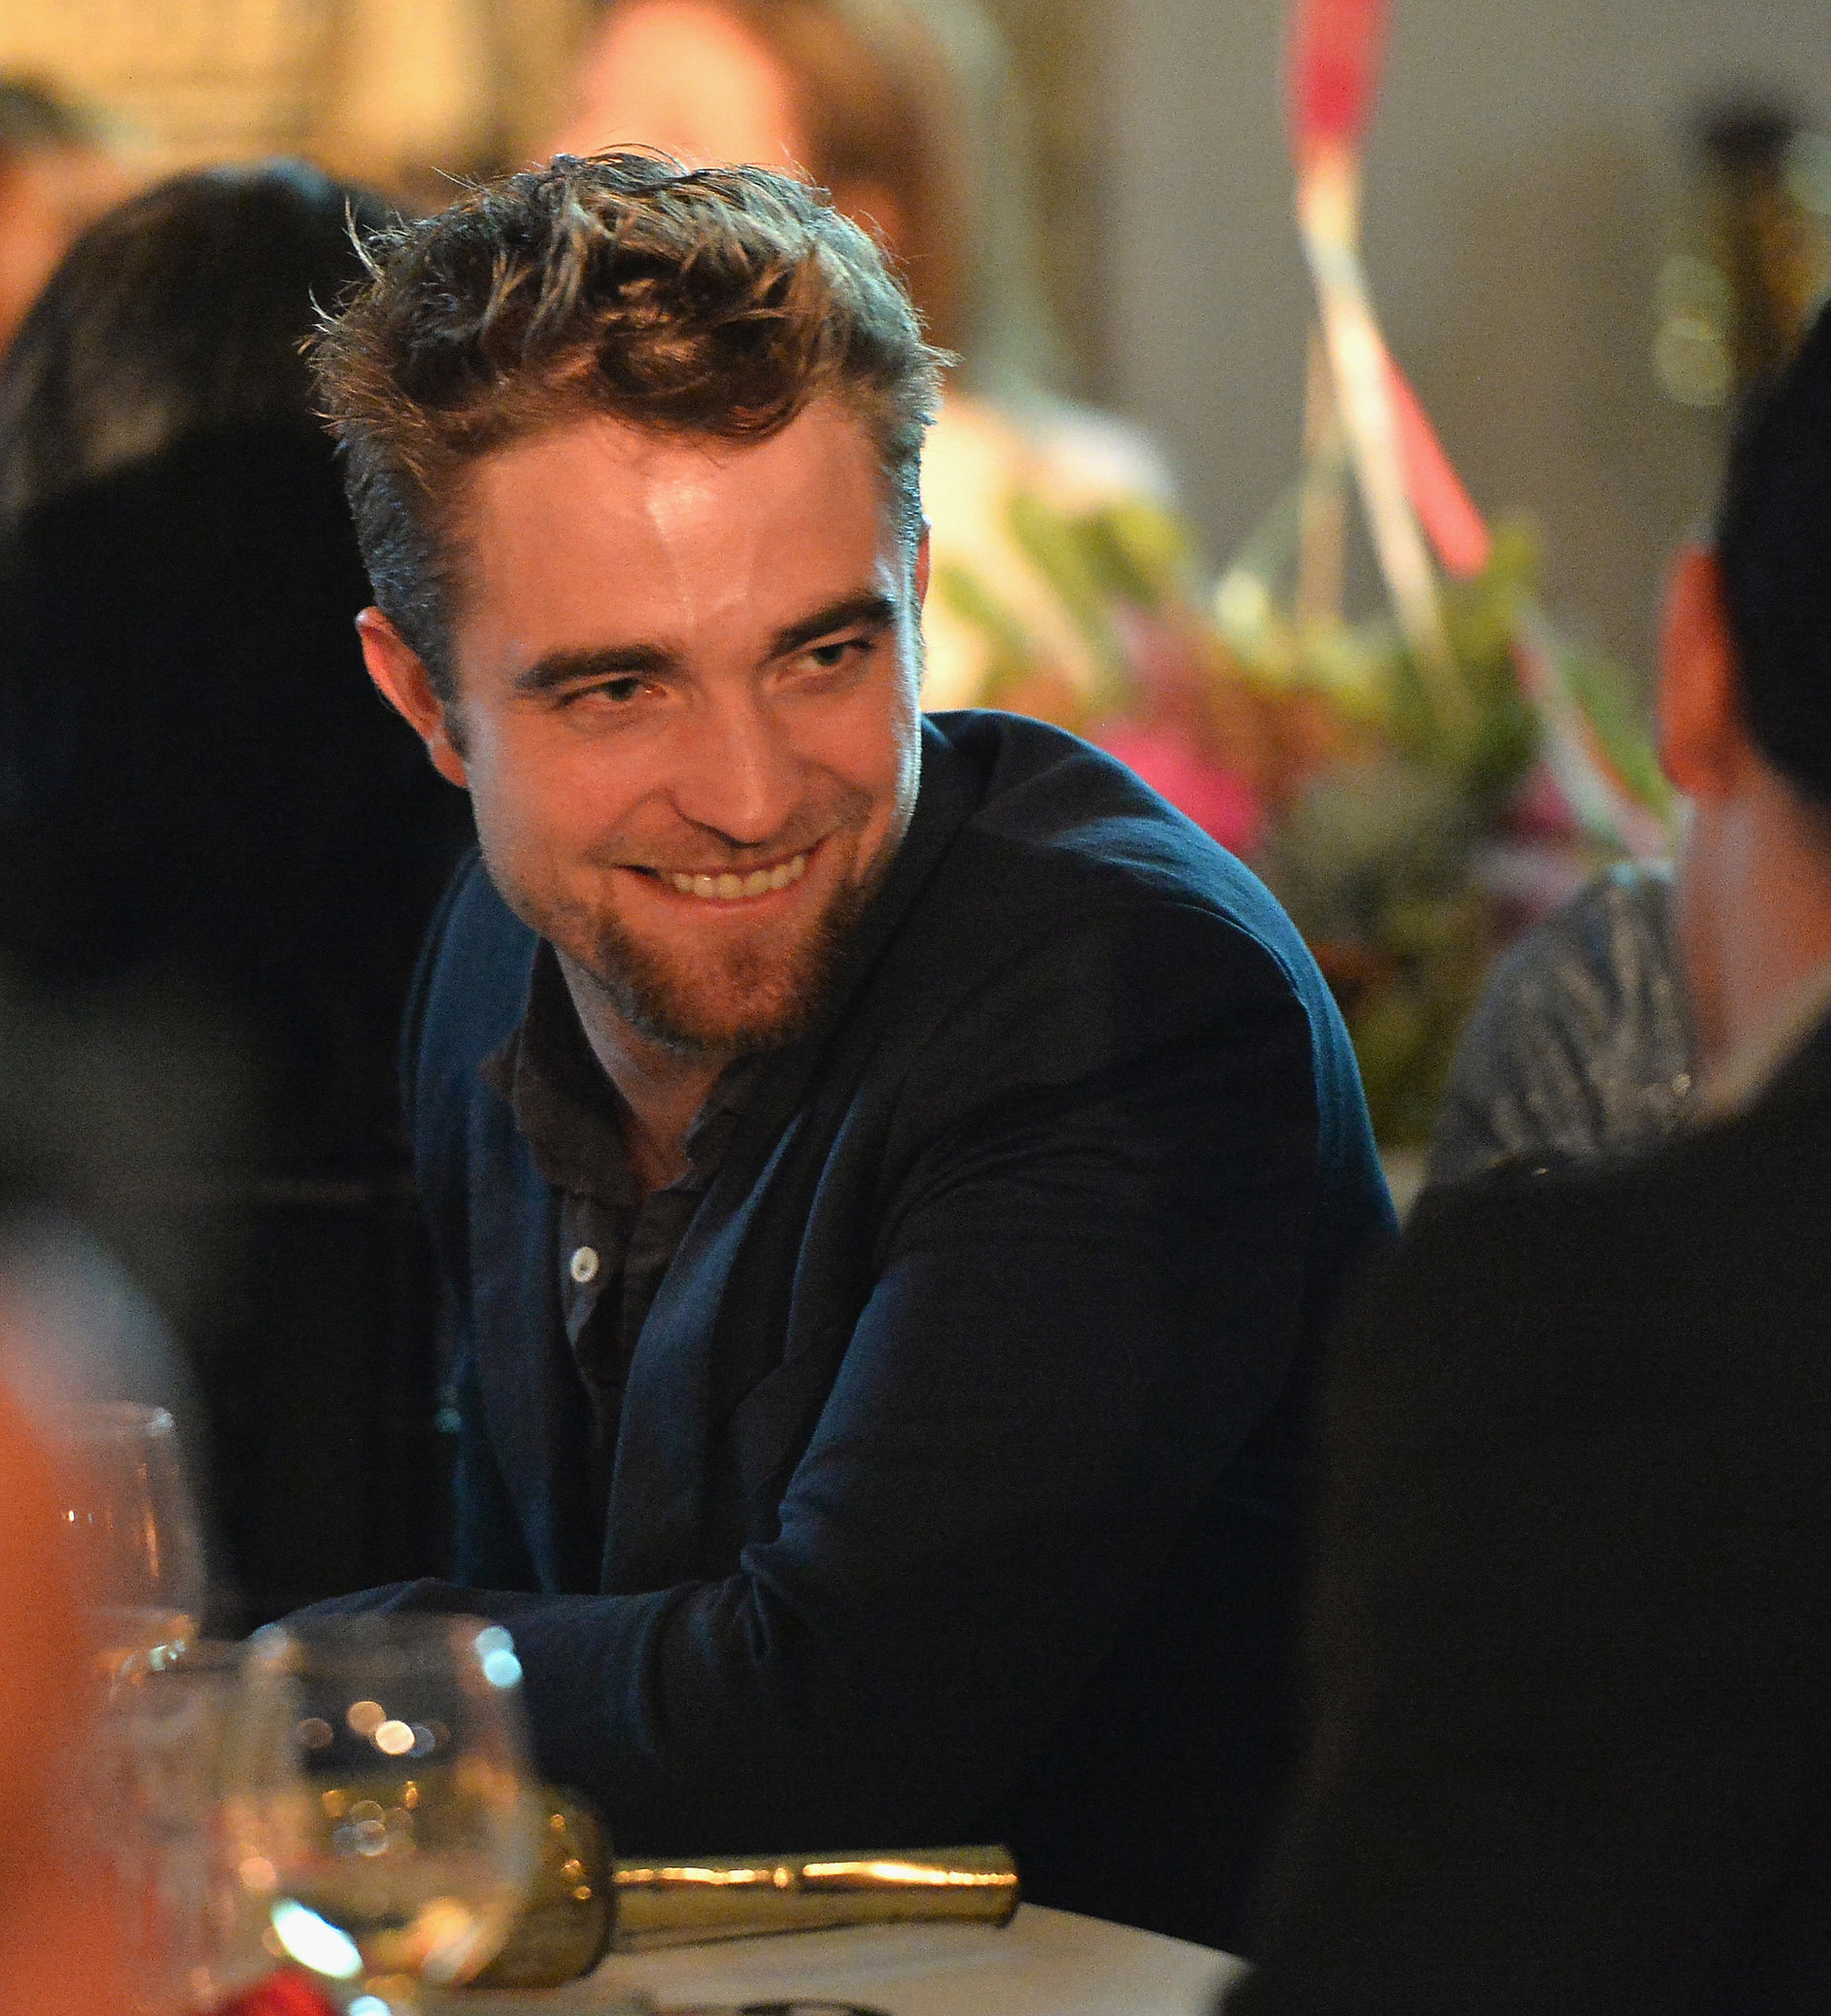 Robert Pattinson debuted his new goatee when he attended the sixth annual Go Go Gala at the Bel Air Bay Club in LA on Thursday.